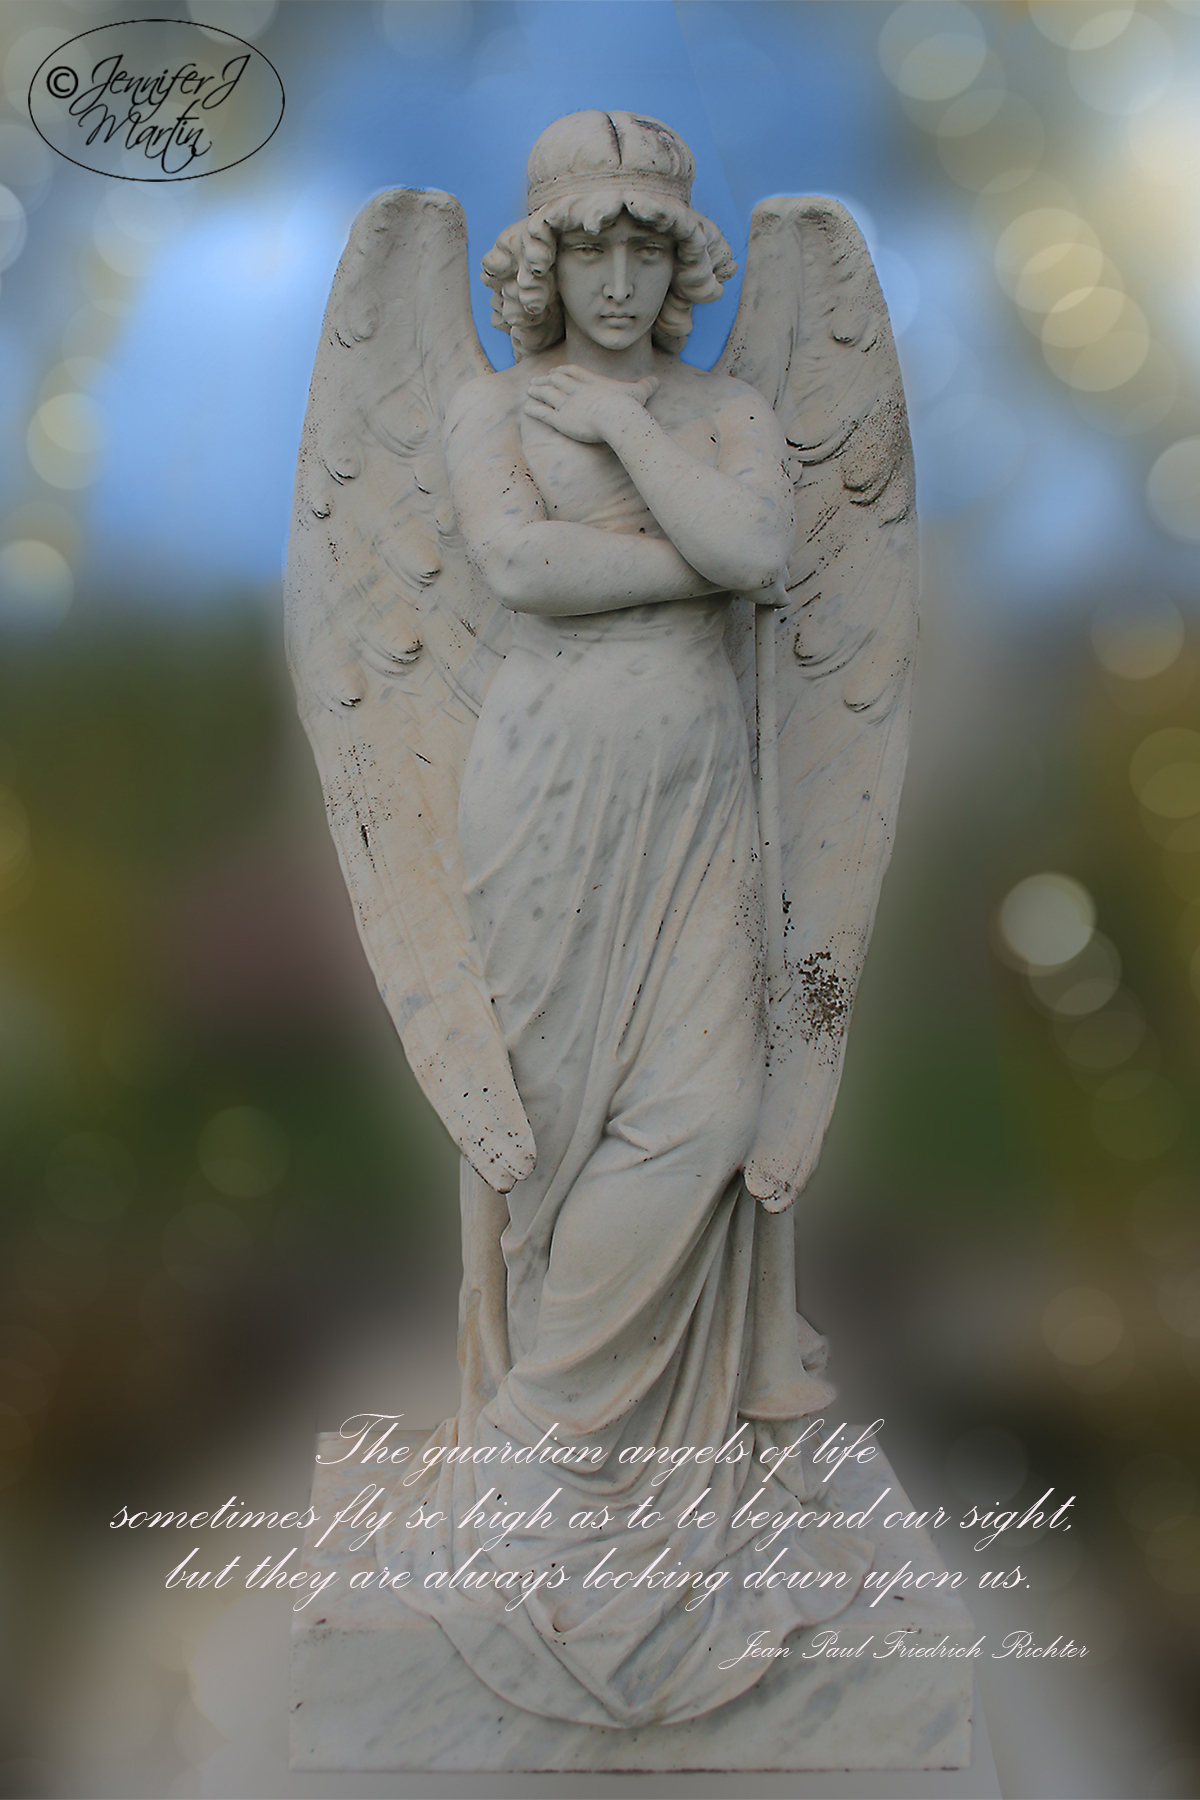 Guardian Angel - (With Guardian Angel Quote)